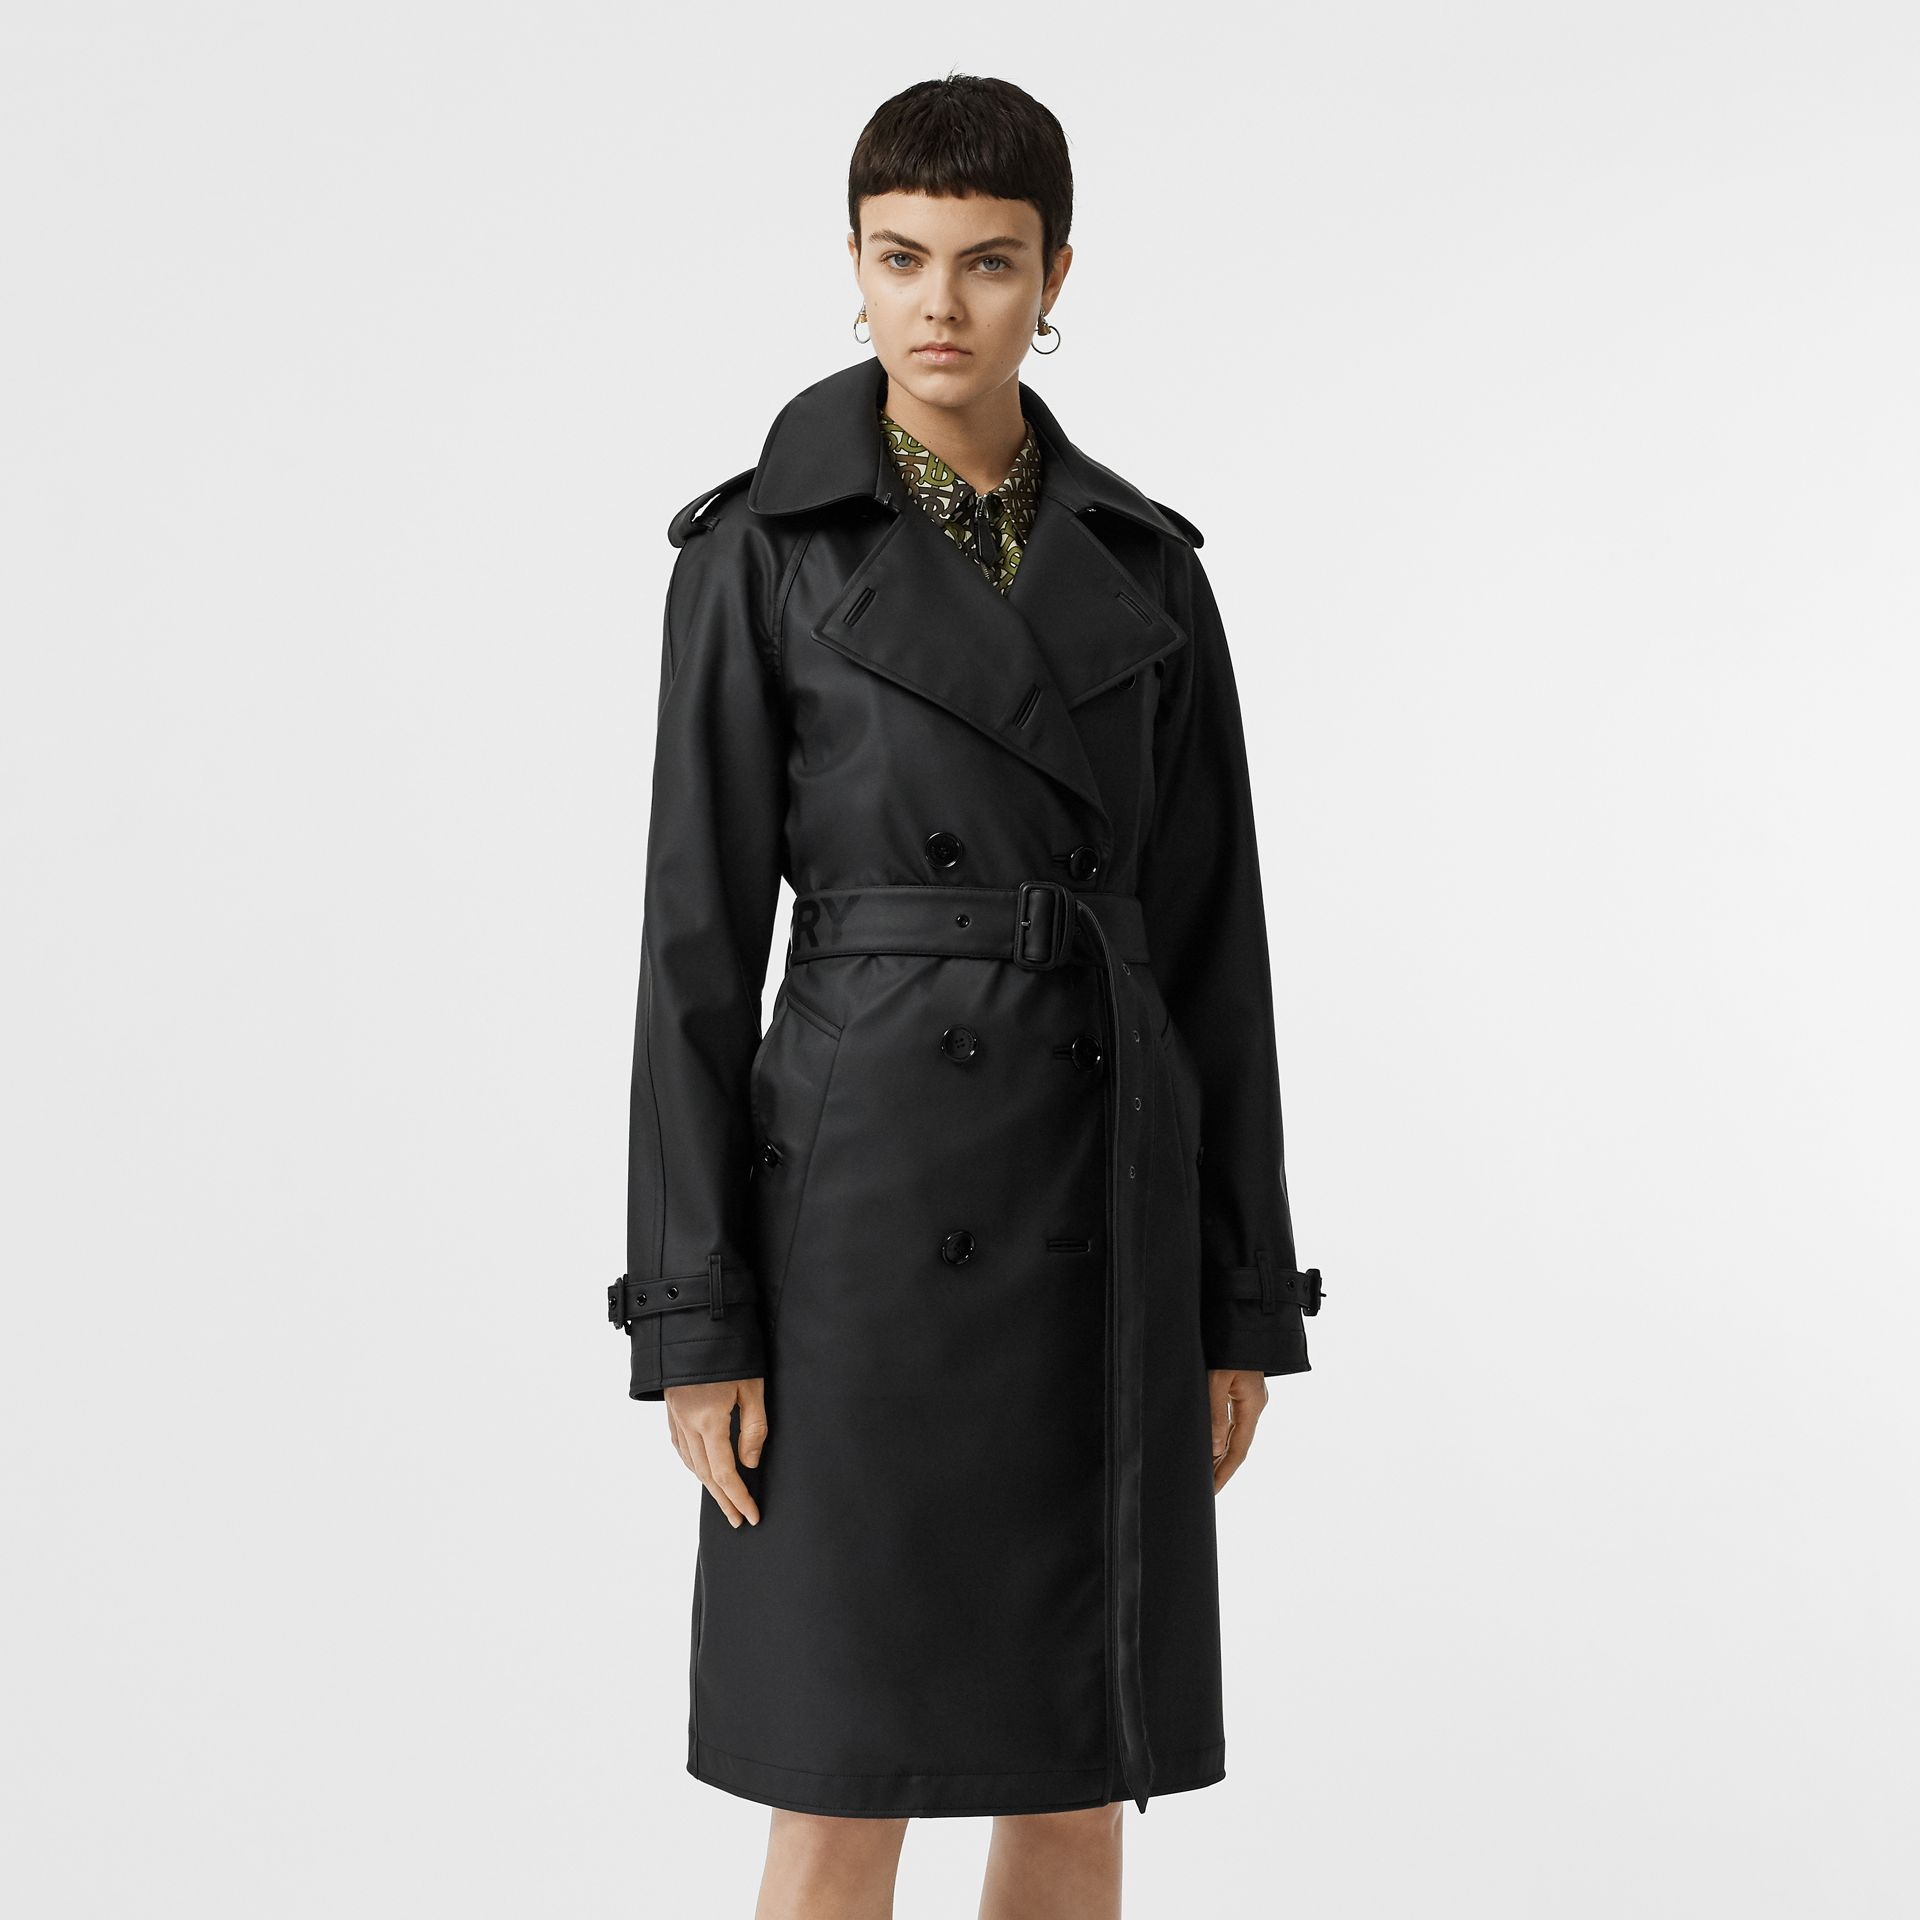 Logo Detail Showerproof Trench Coat in Black/white - Women | Burberry - gallery image 7